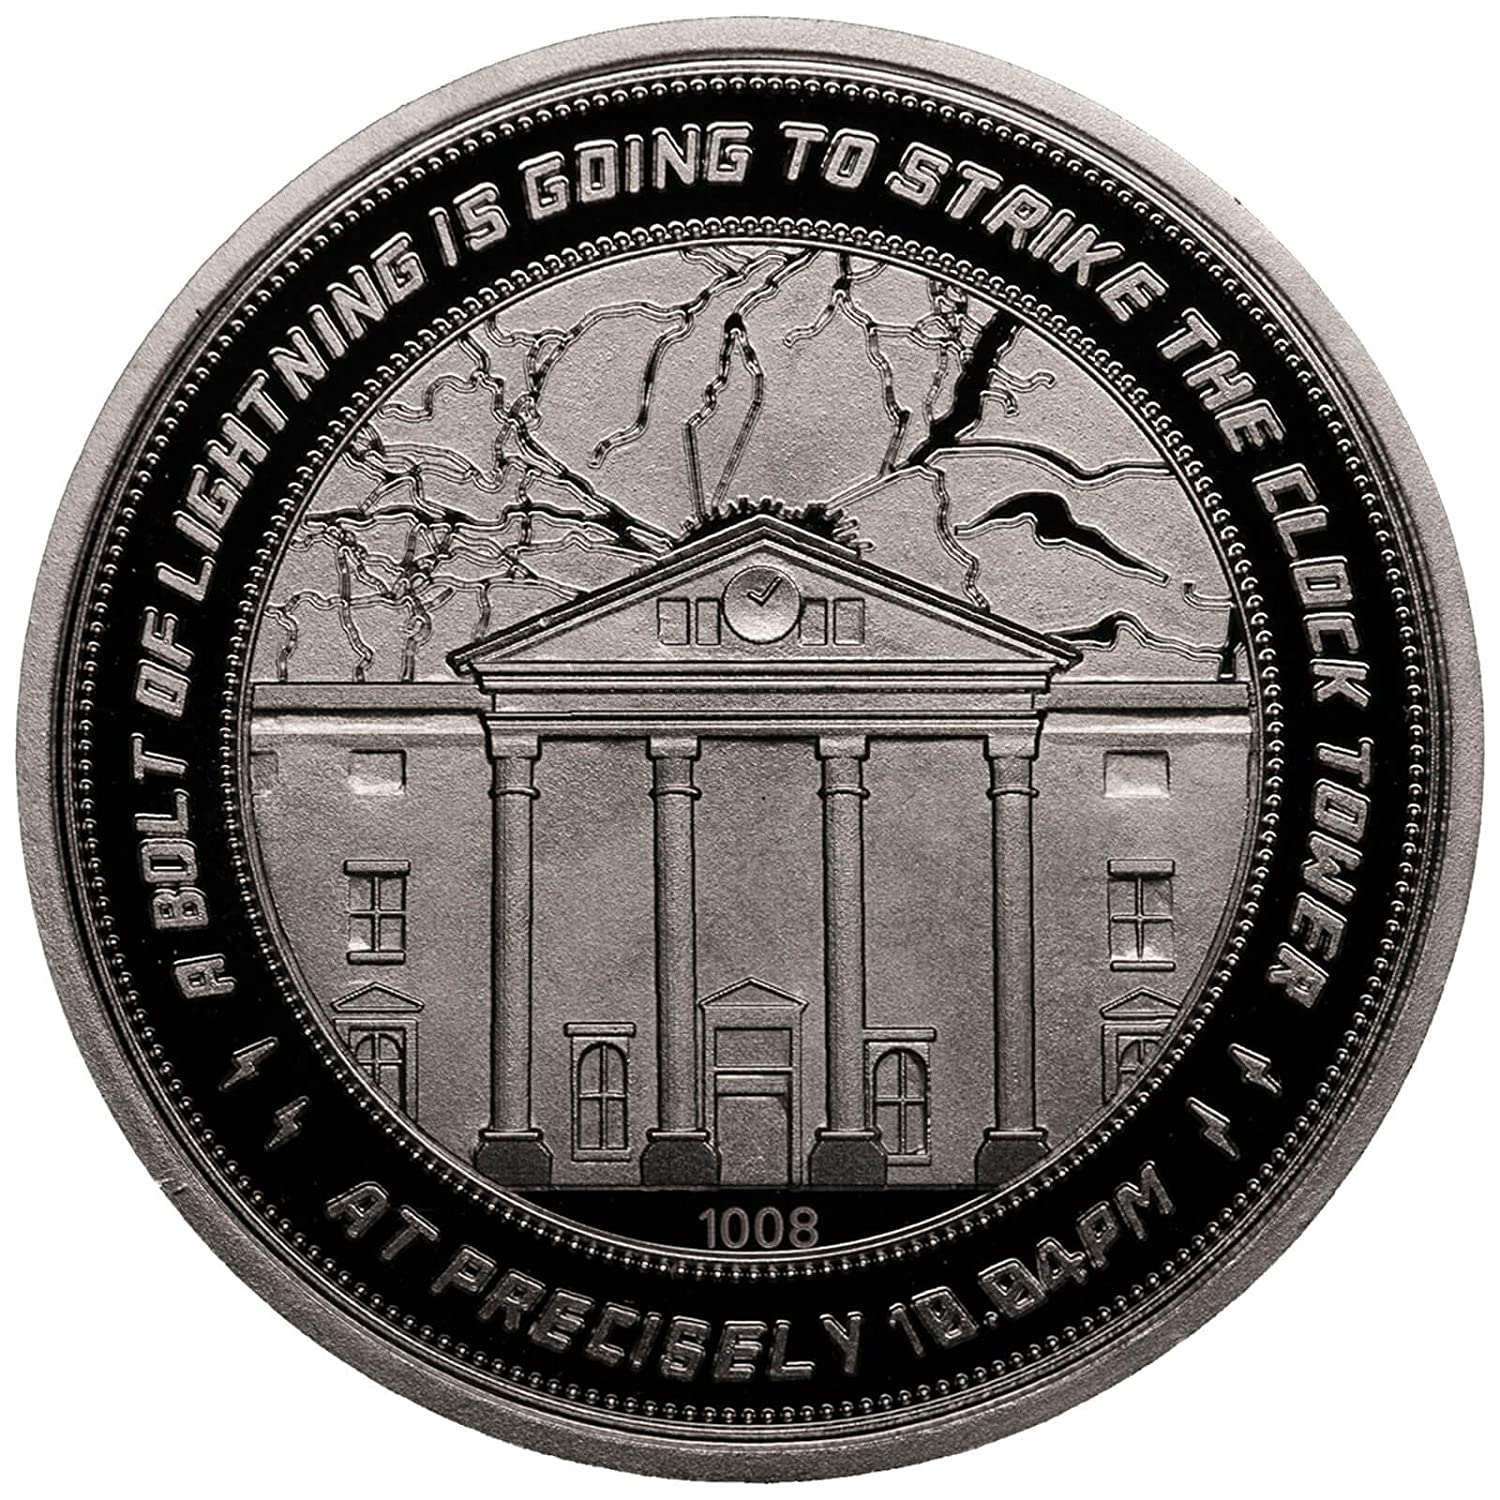 Iron Gut Publishing Back to The Future Collectable Coin 25Th Anniversary Clock Tower